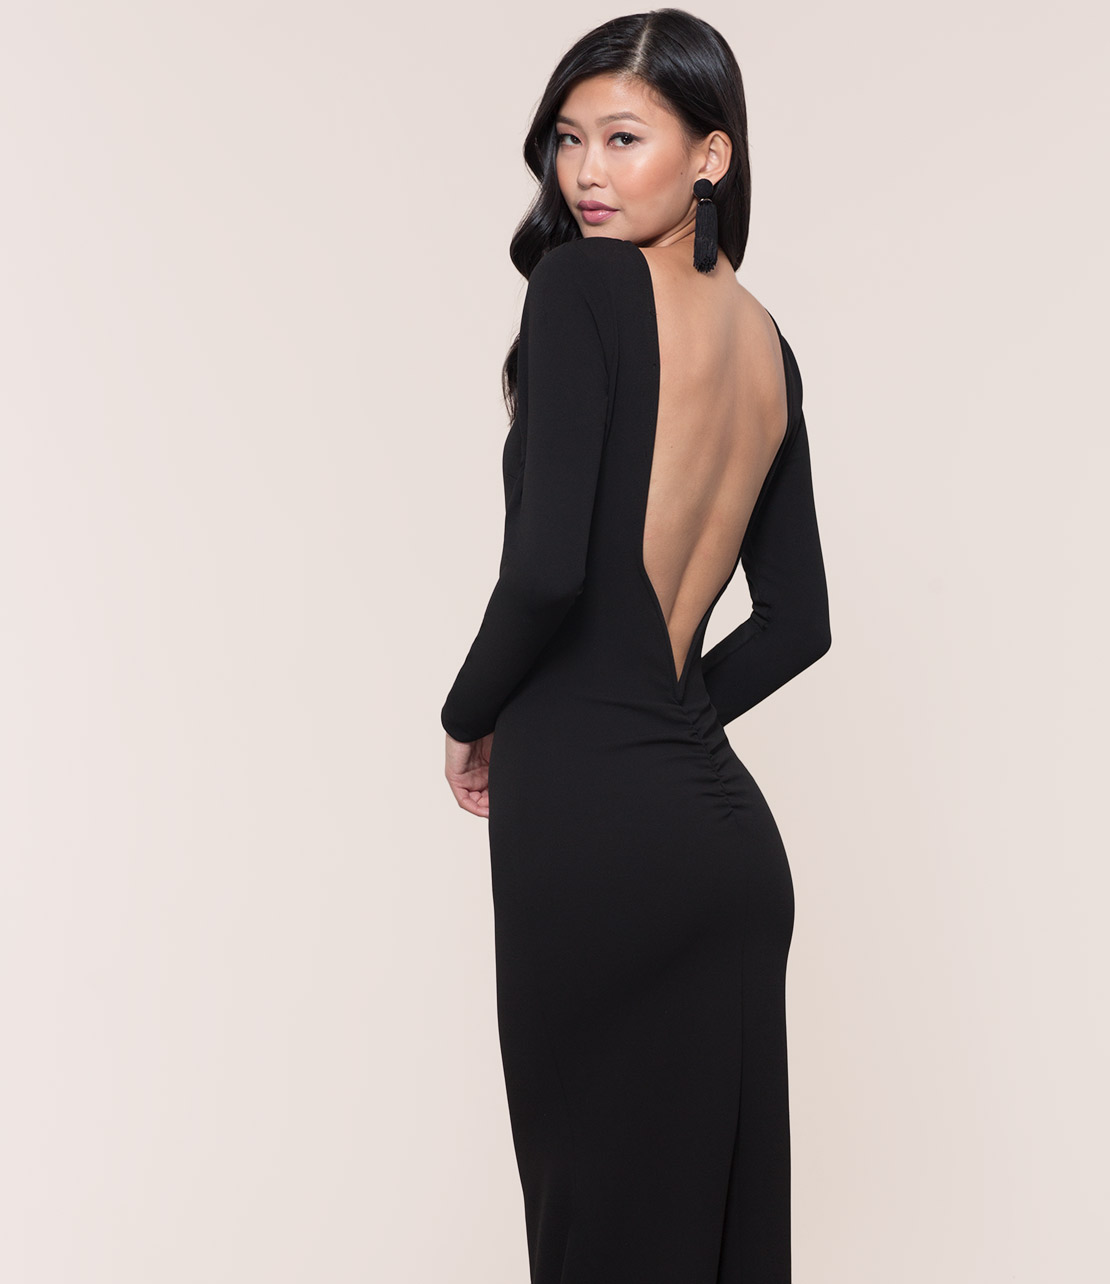 How To Wear Black Backless Dress